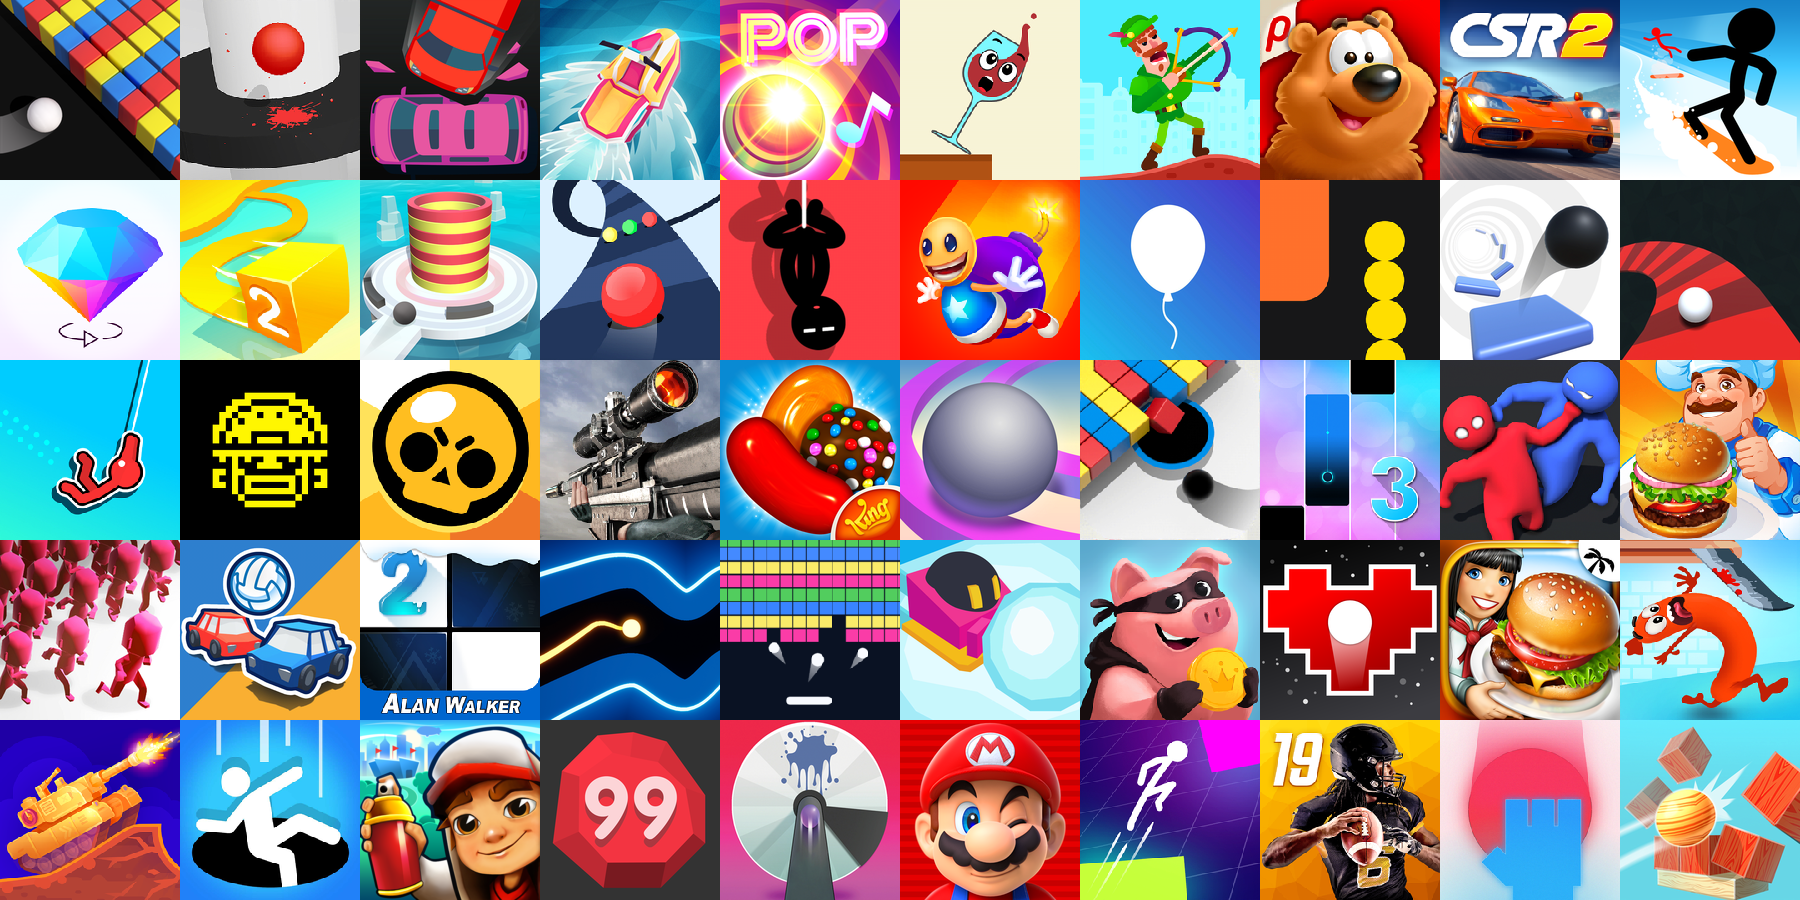 App icons of Top 50 mobile games in the US App Store Game - Arcade Category